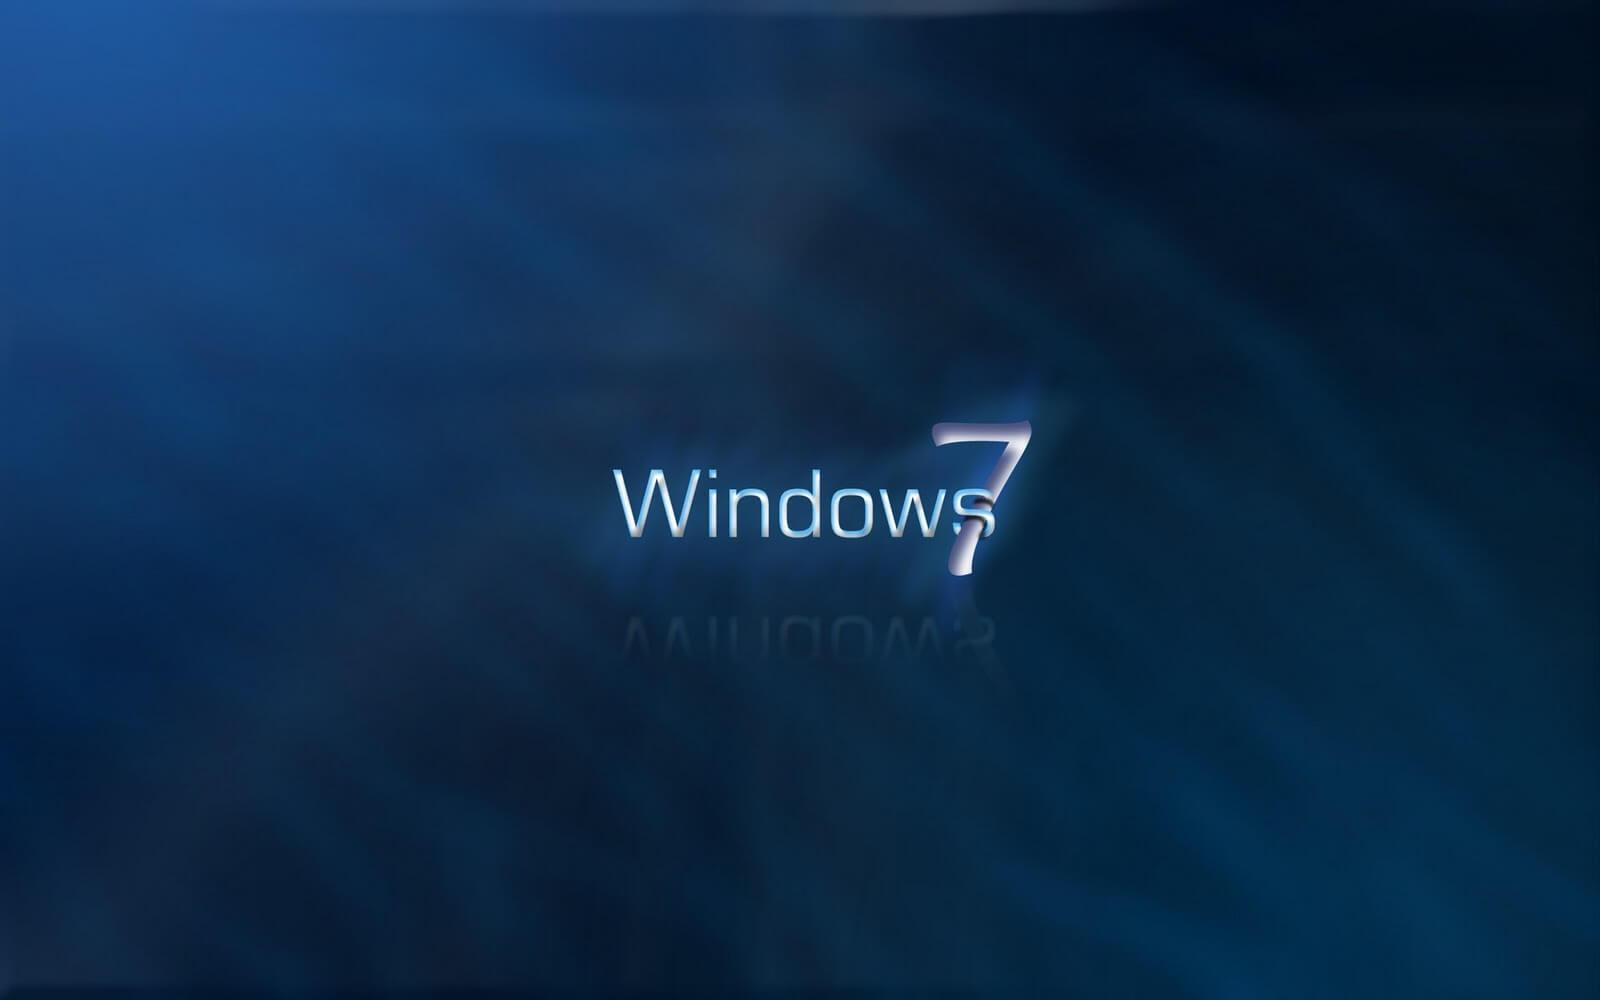 2016 Windows 7 Wallpapers Free Download Desktop